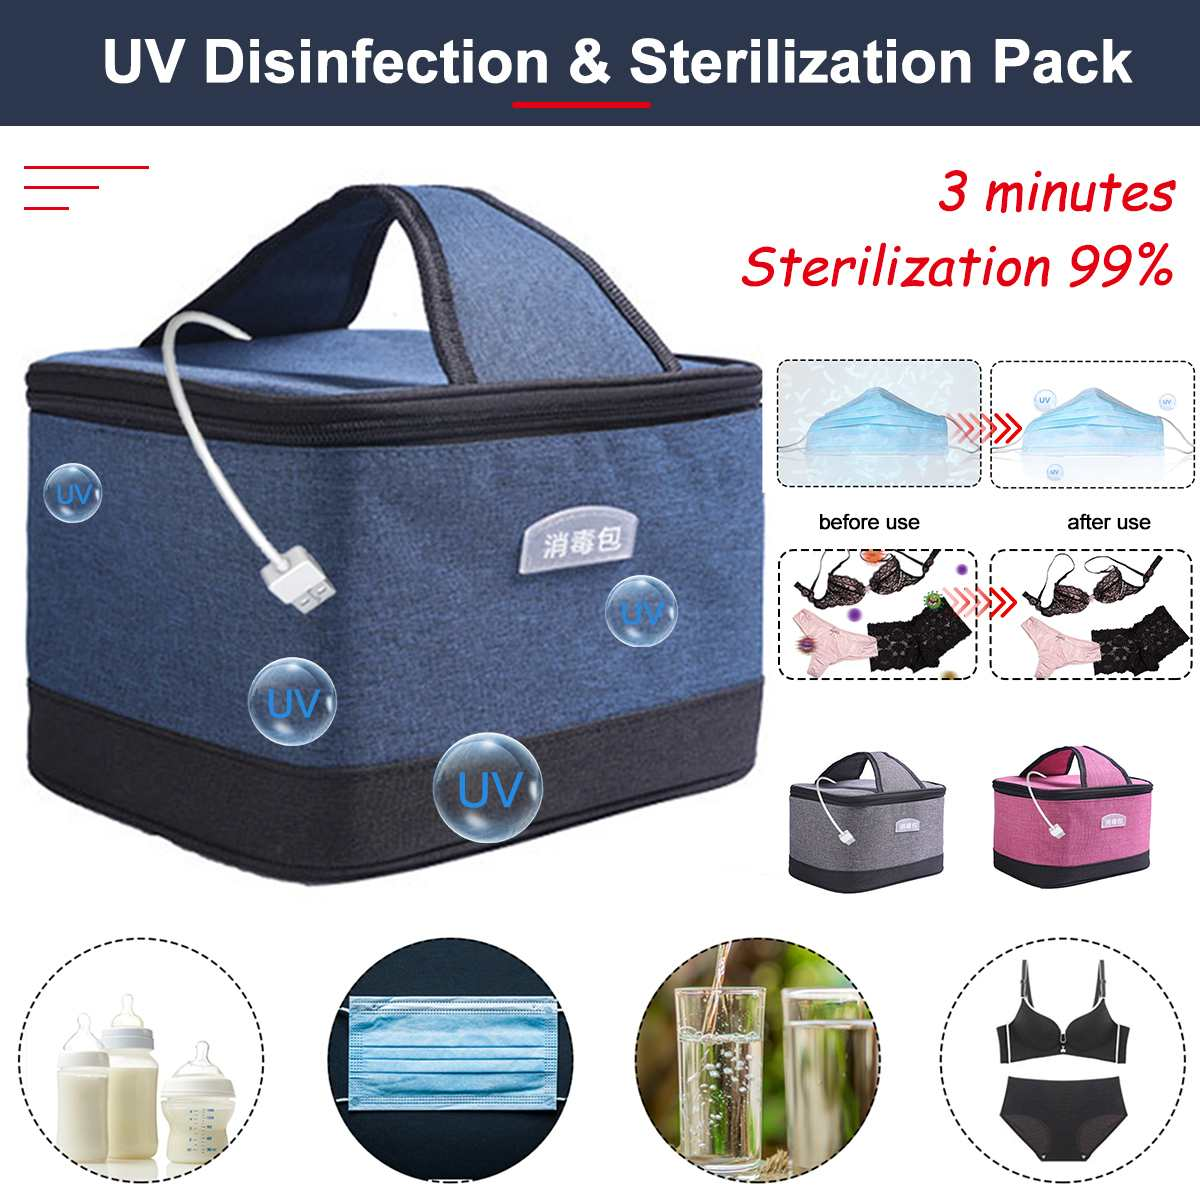 UV Disinfection Package UV Disinfection Pack Baby Bottle/ Underwear/ Beauty Tools/ Mask/Toothbrush Supplies Sterilization Box